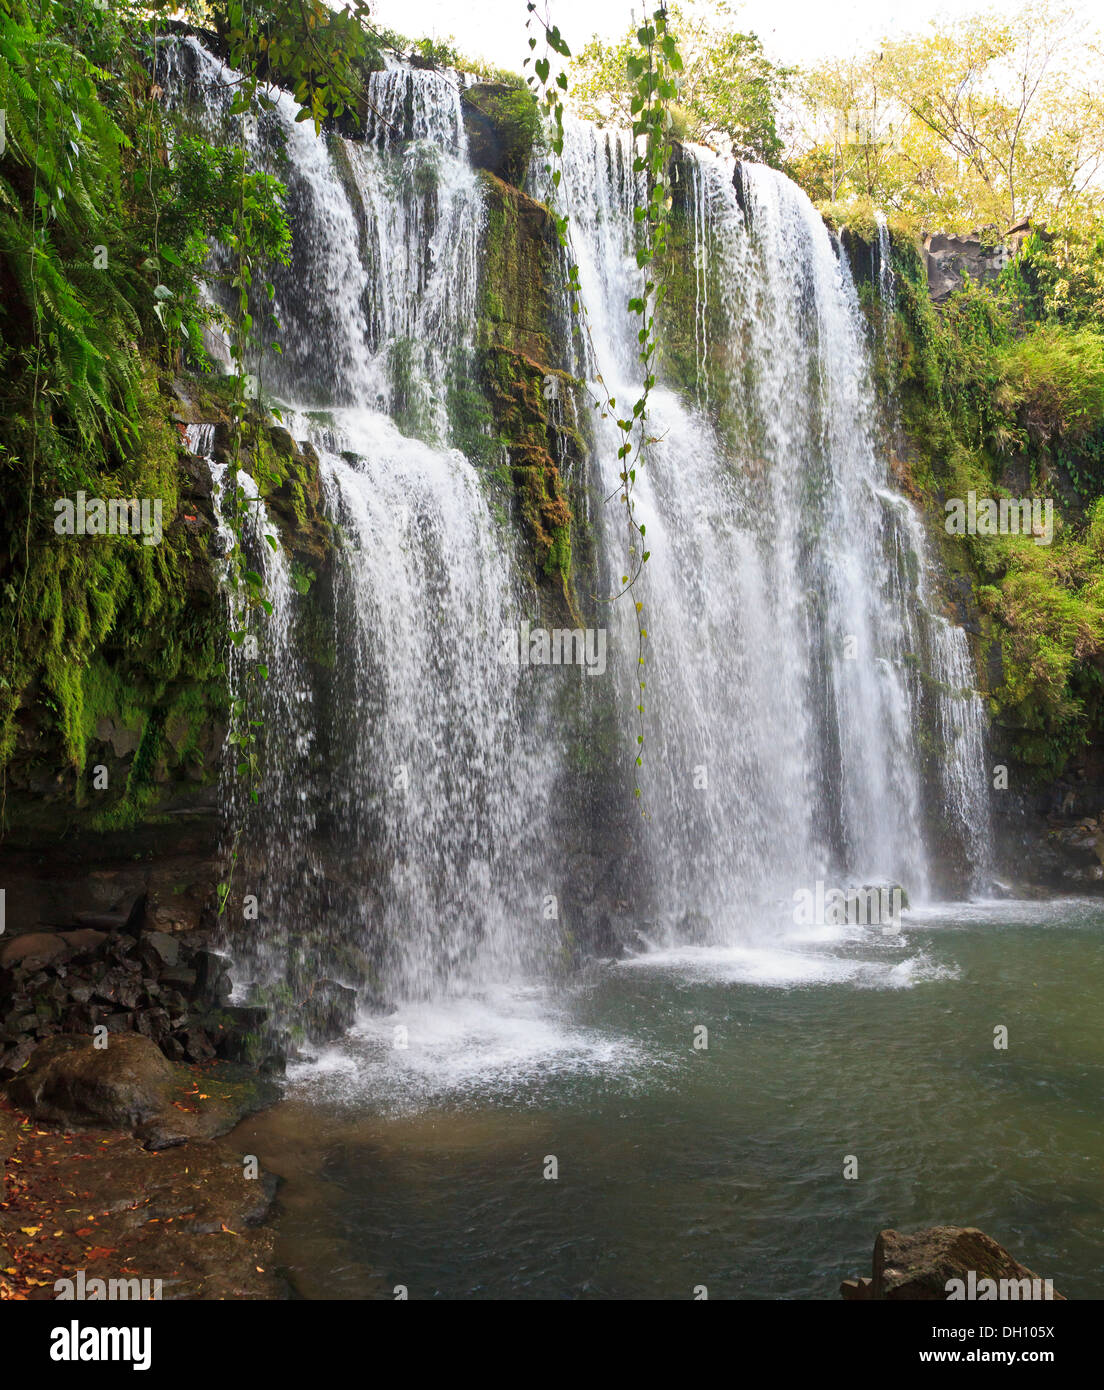 Side view of the idyllic Llano de Cortes waterfall near Bagaces, Costa Rica - Stock Image